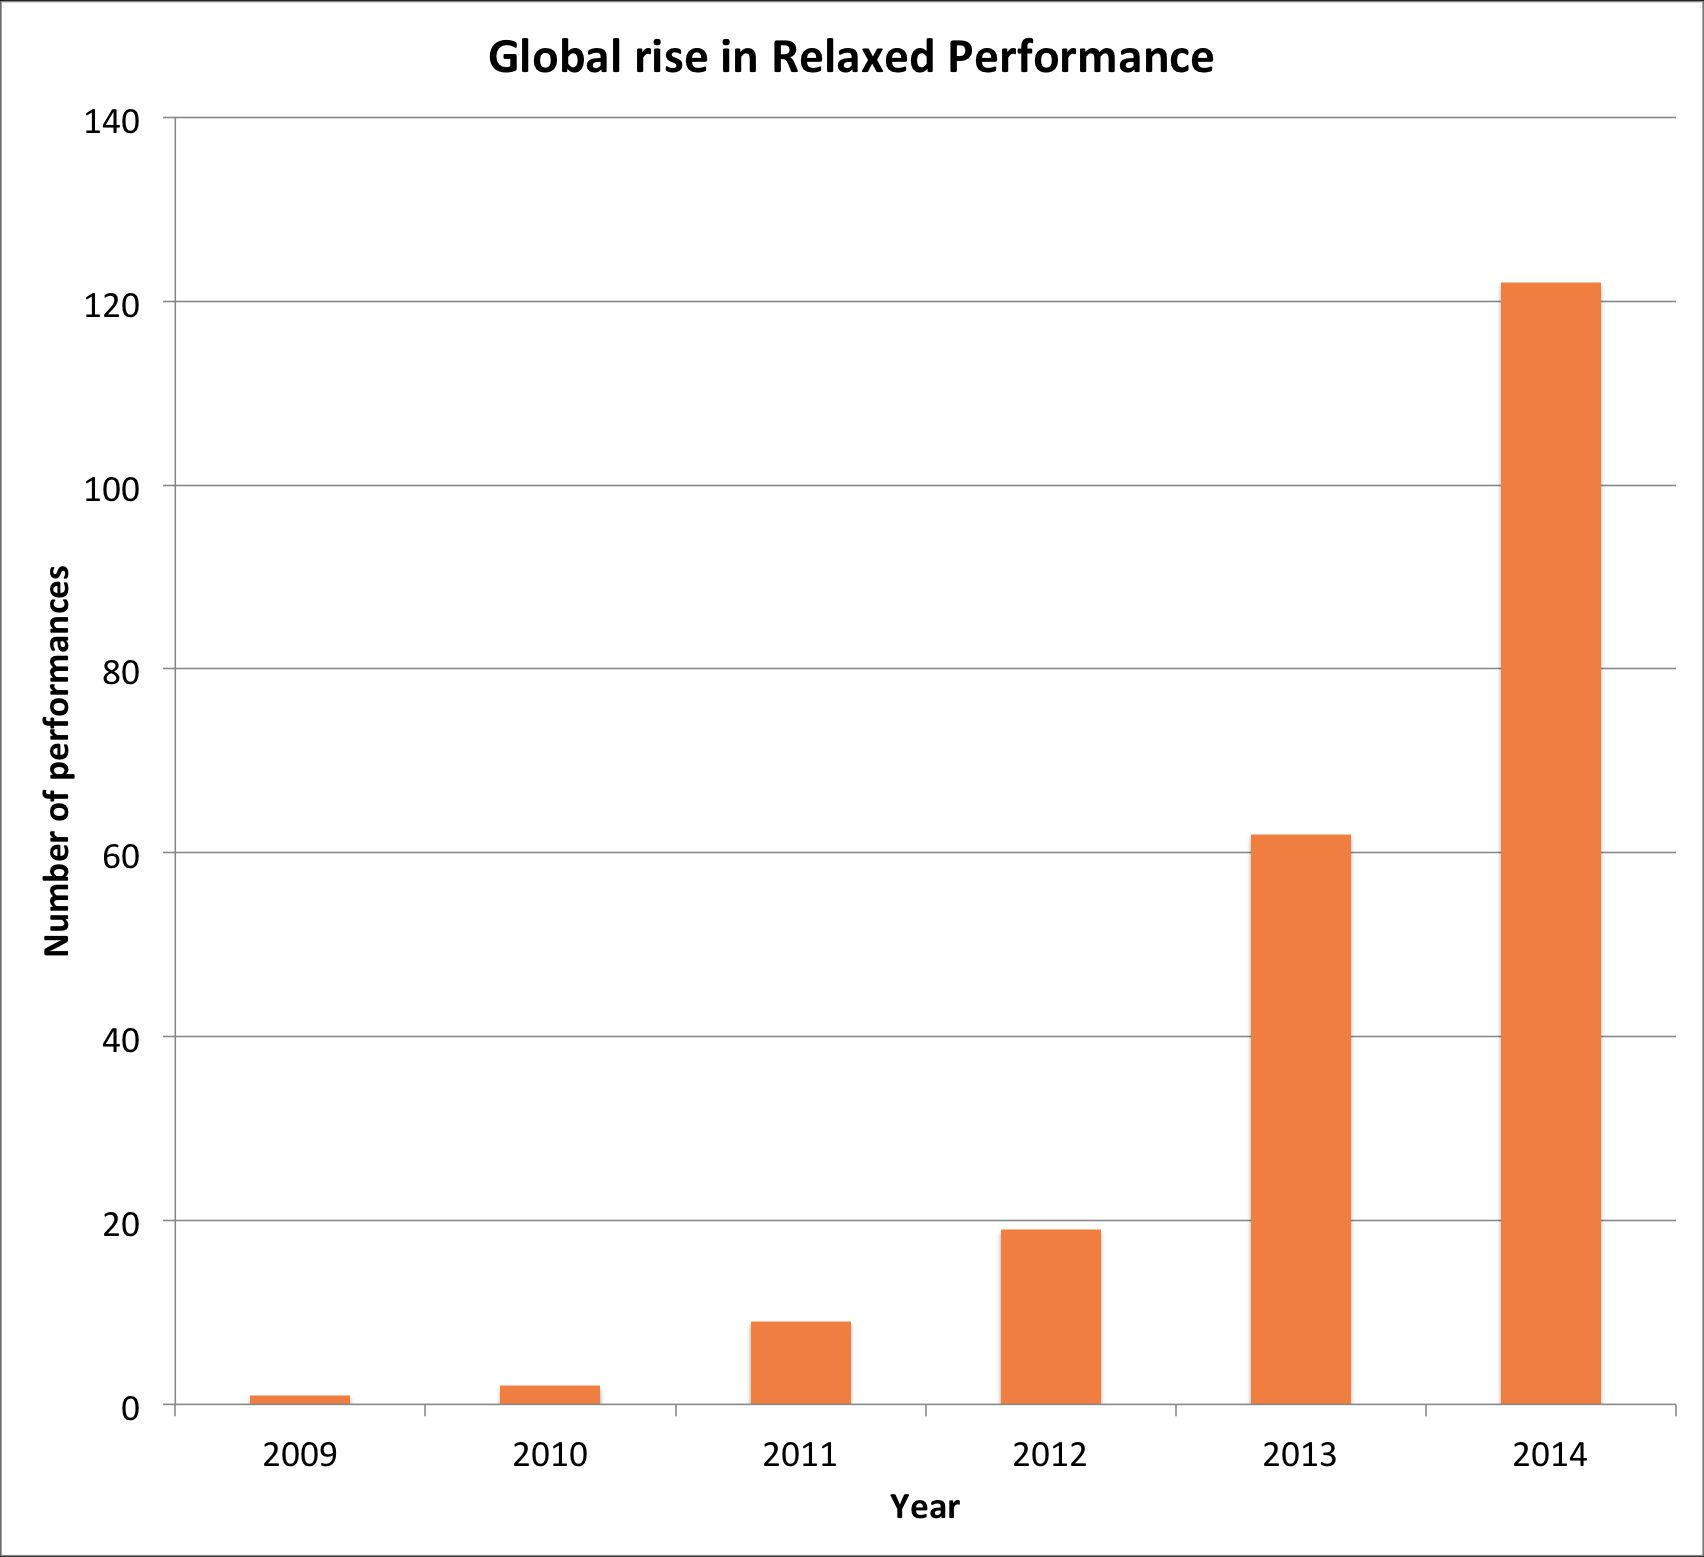 Global rise in relaxed performance, 2009-2014.